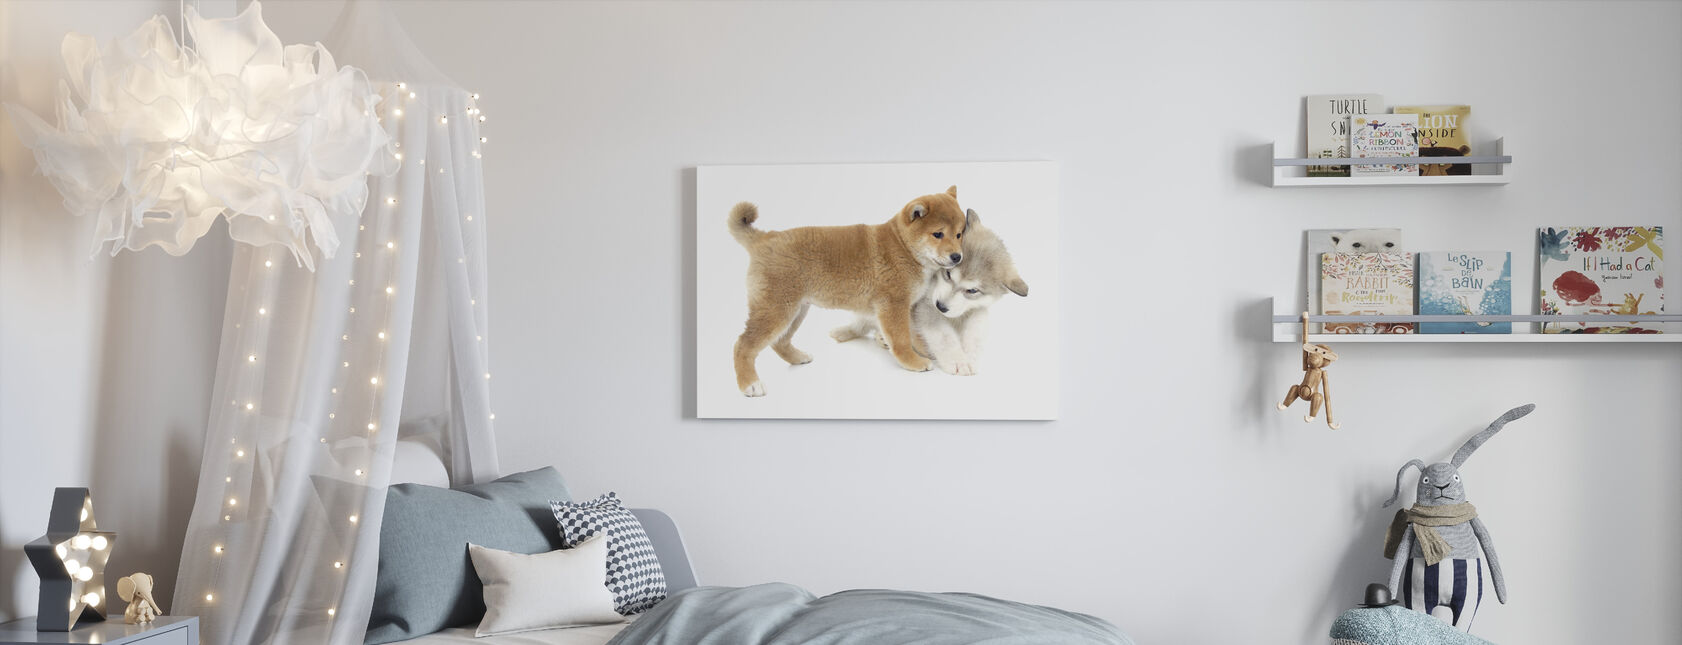 Puppies Playing - Canvas print - Kids Room